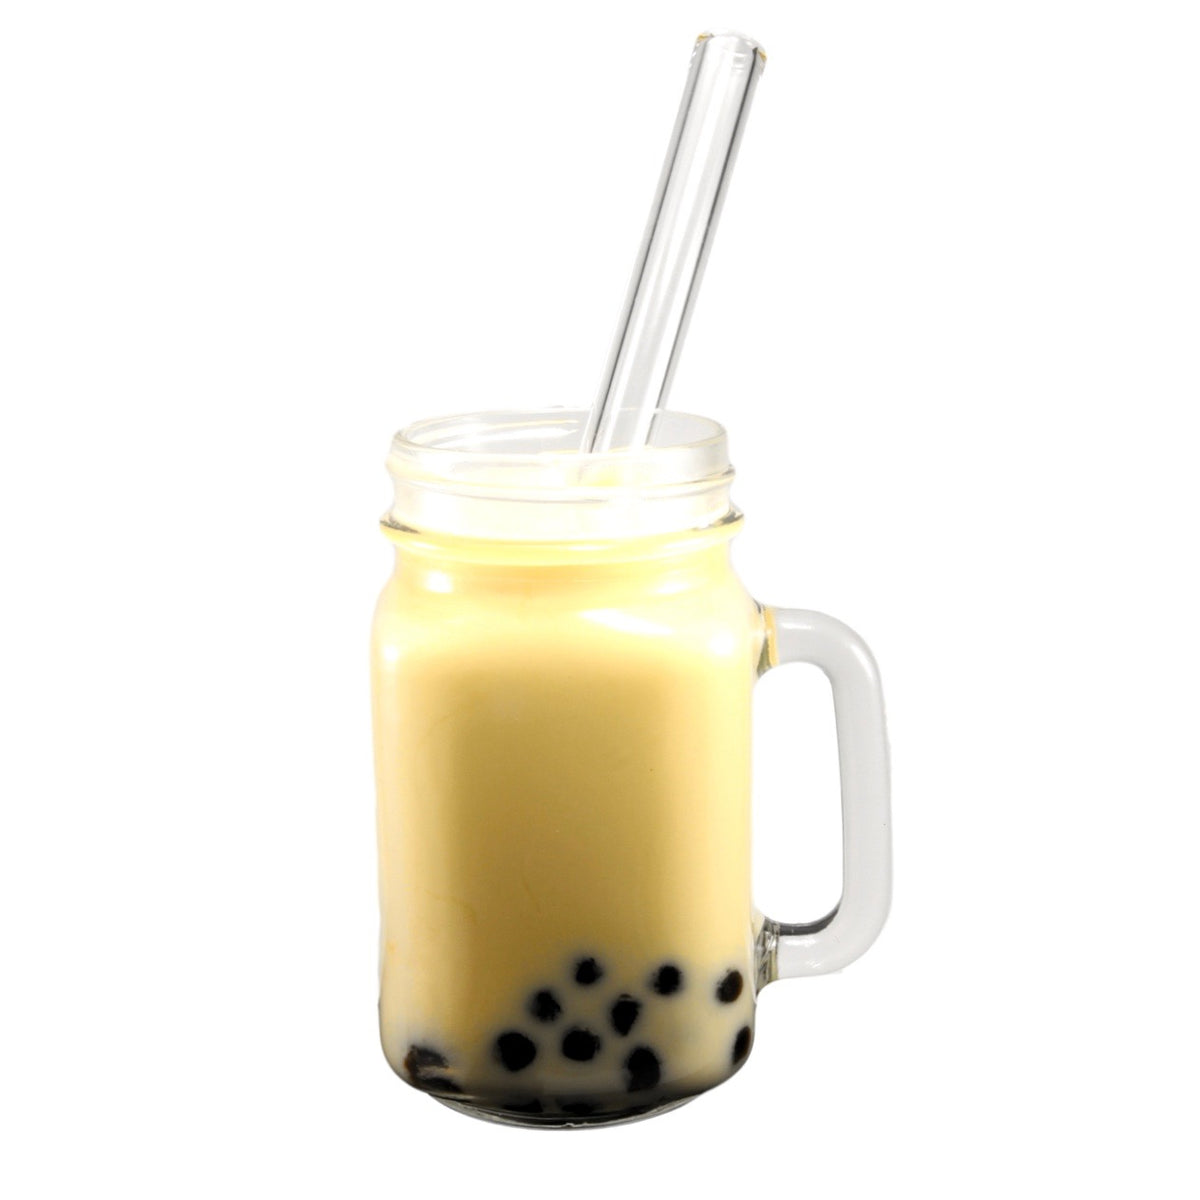 boba/bubble tea reusable glass straw